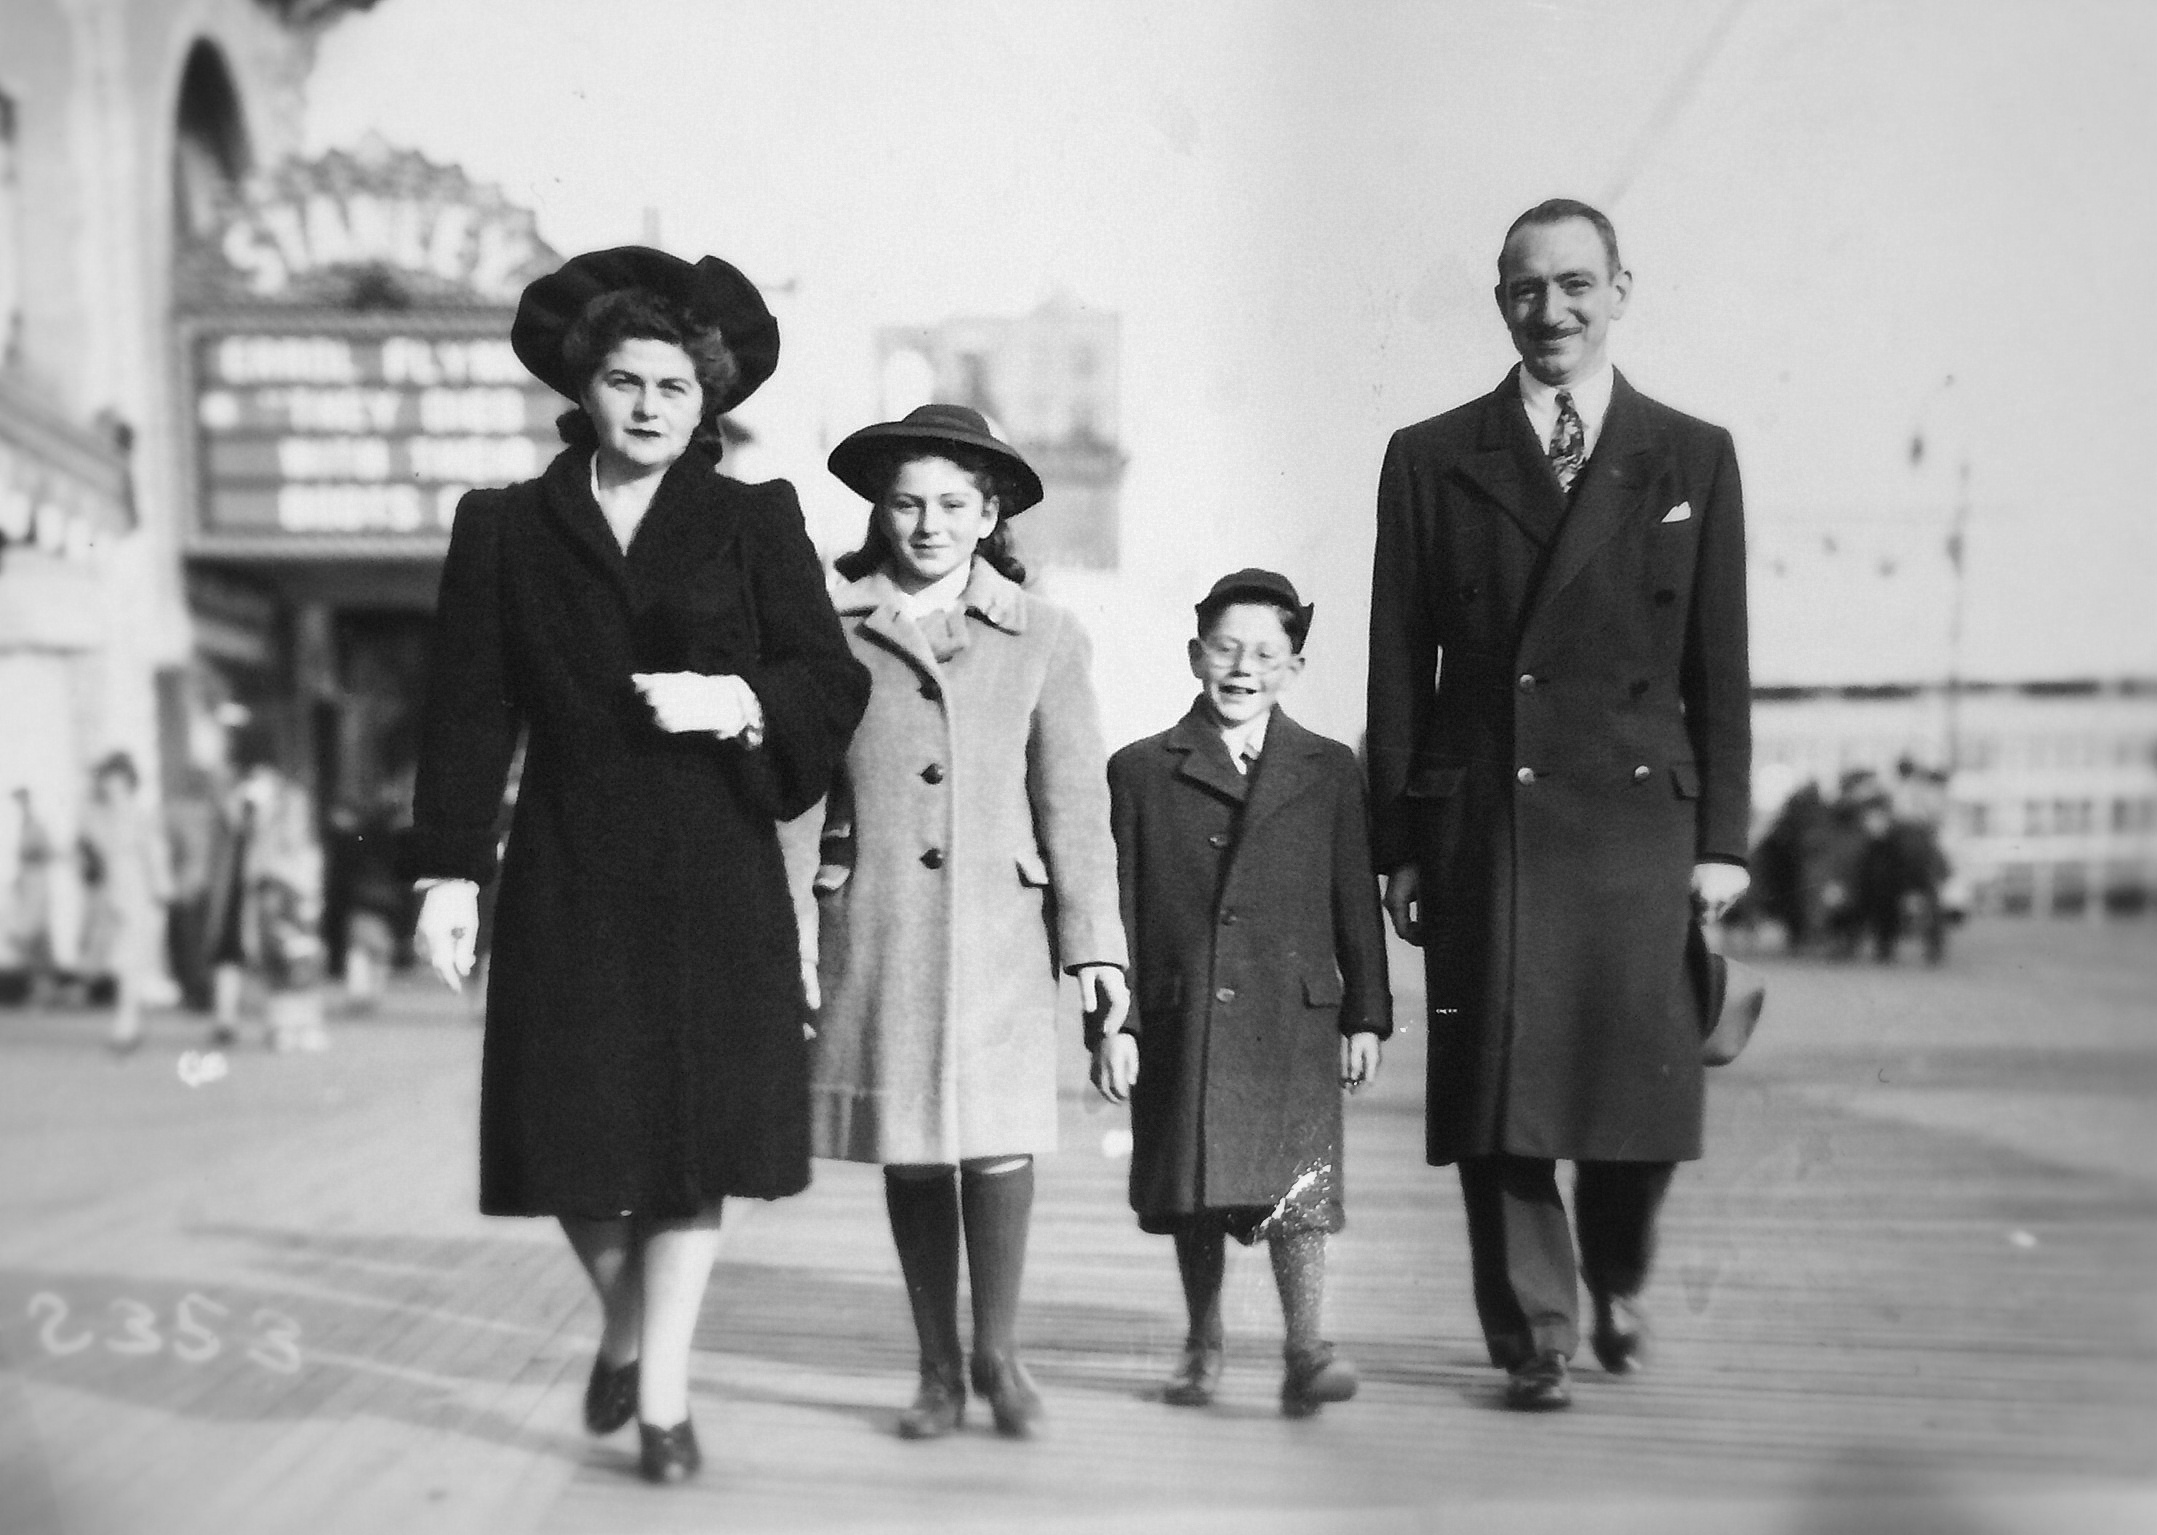 Robert and his family in Atlantic City, New Jersey